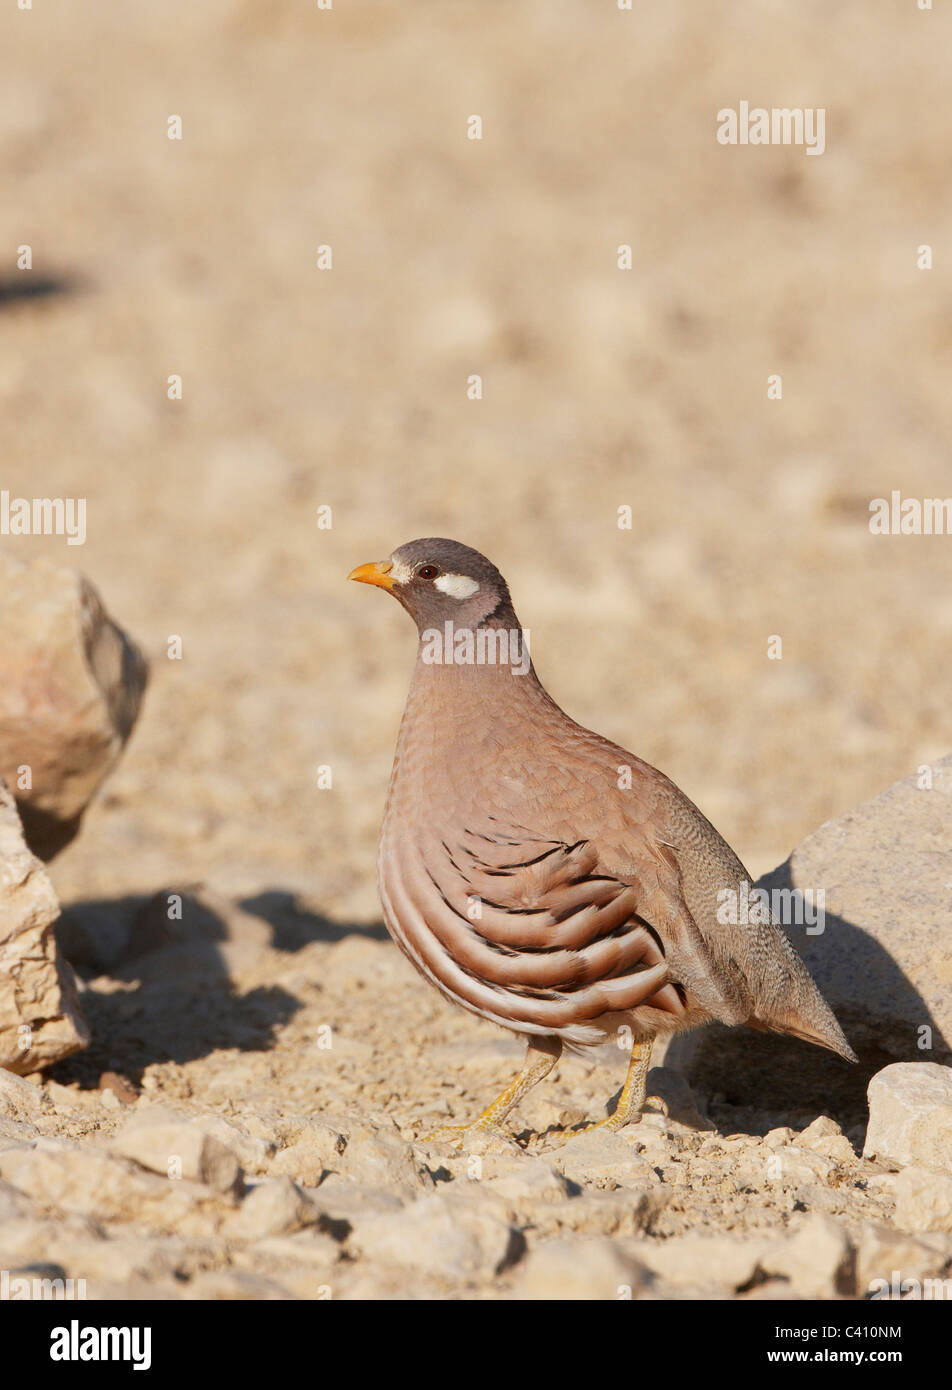 Sand Partridge (Ammoperdix heyi). Male standing on a stone. Israel. Stock Photo